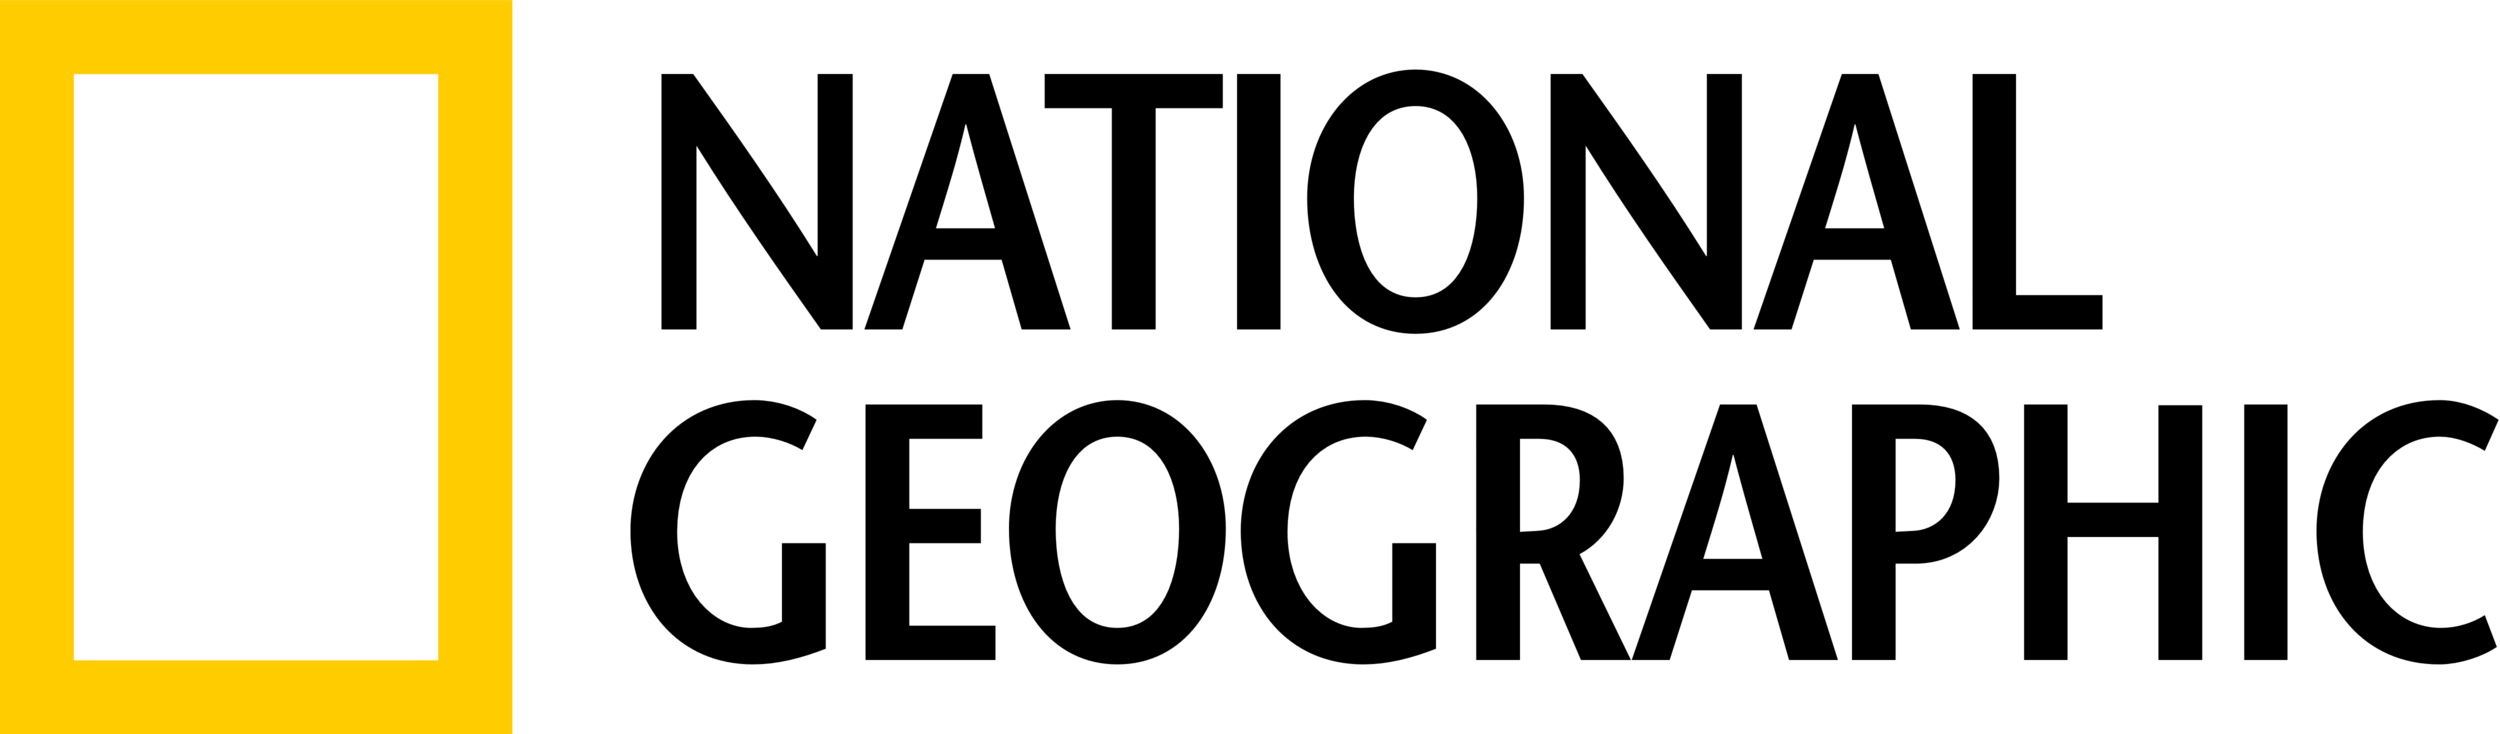 National_Geographic_logo-transparent.png